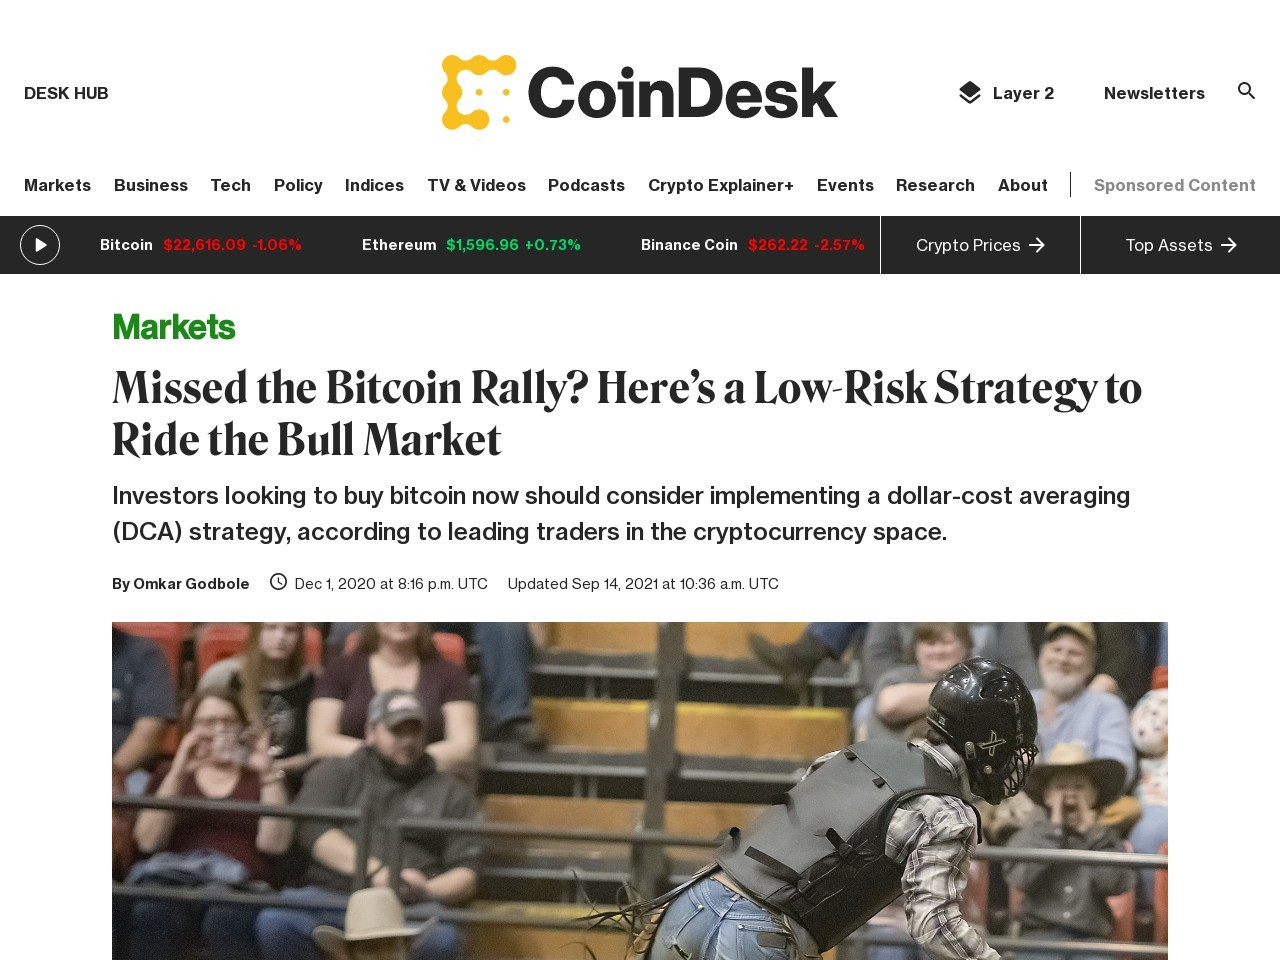 Missed the Bitcoin Rally? Here's a Low-Risk Strategy to Ride the Bull Market